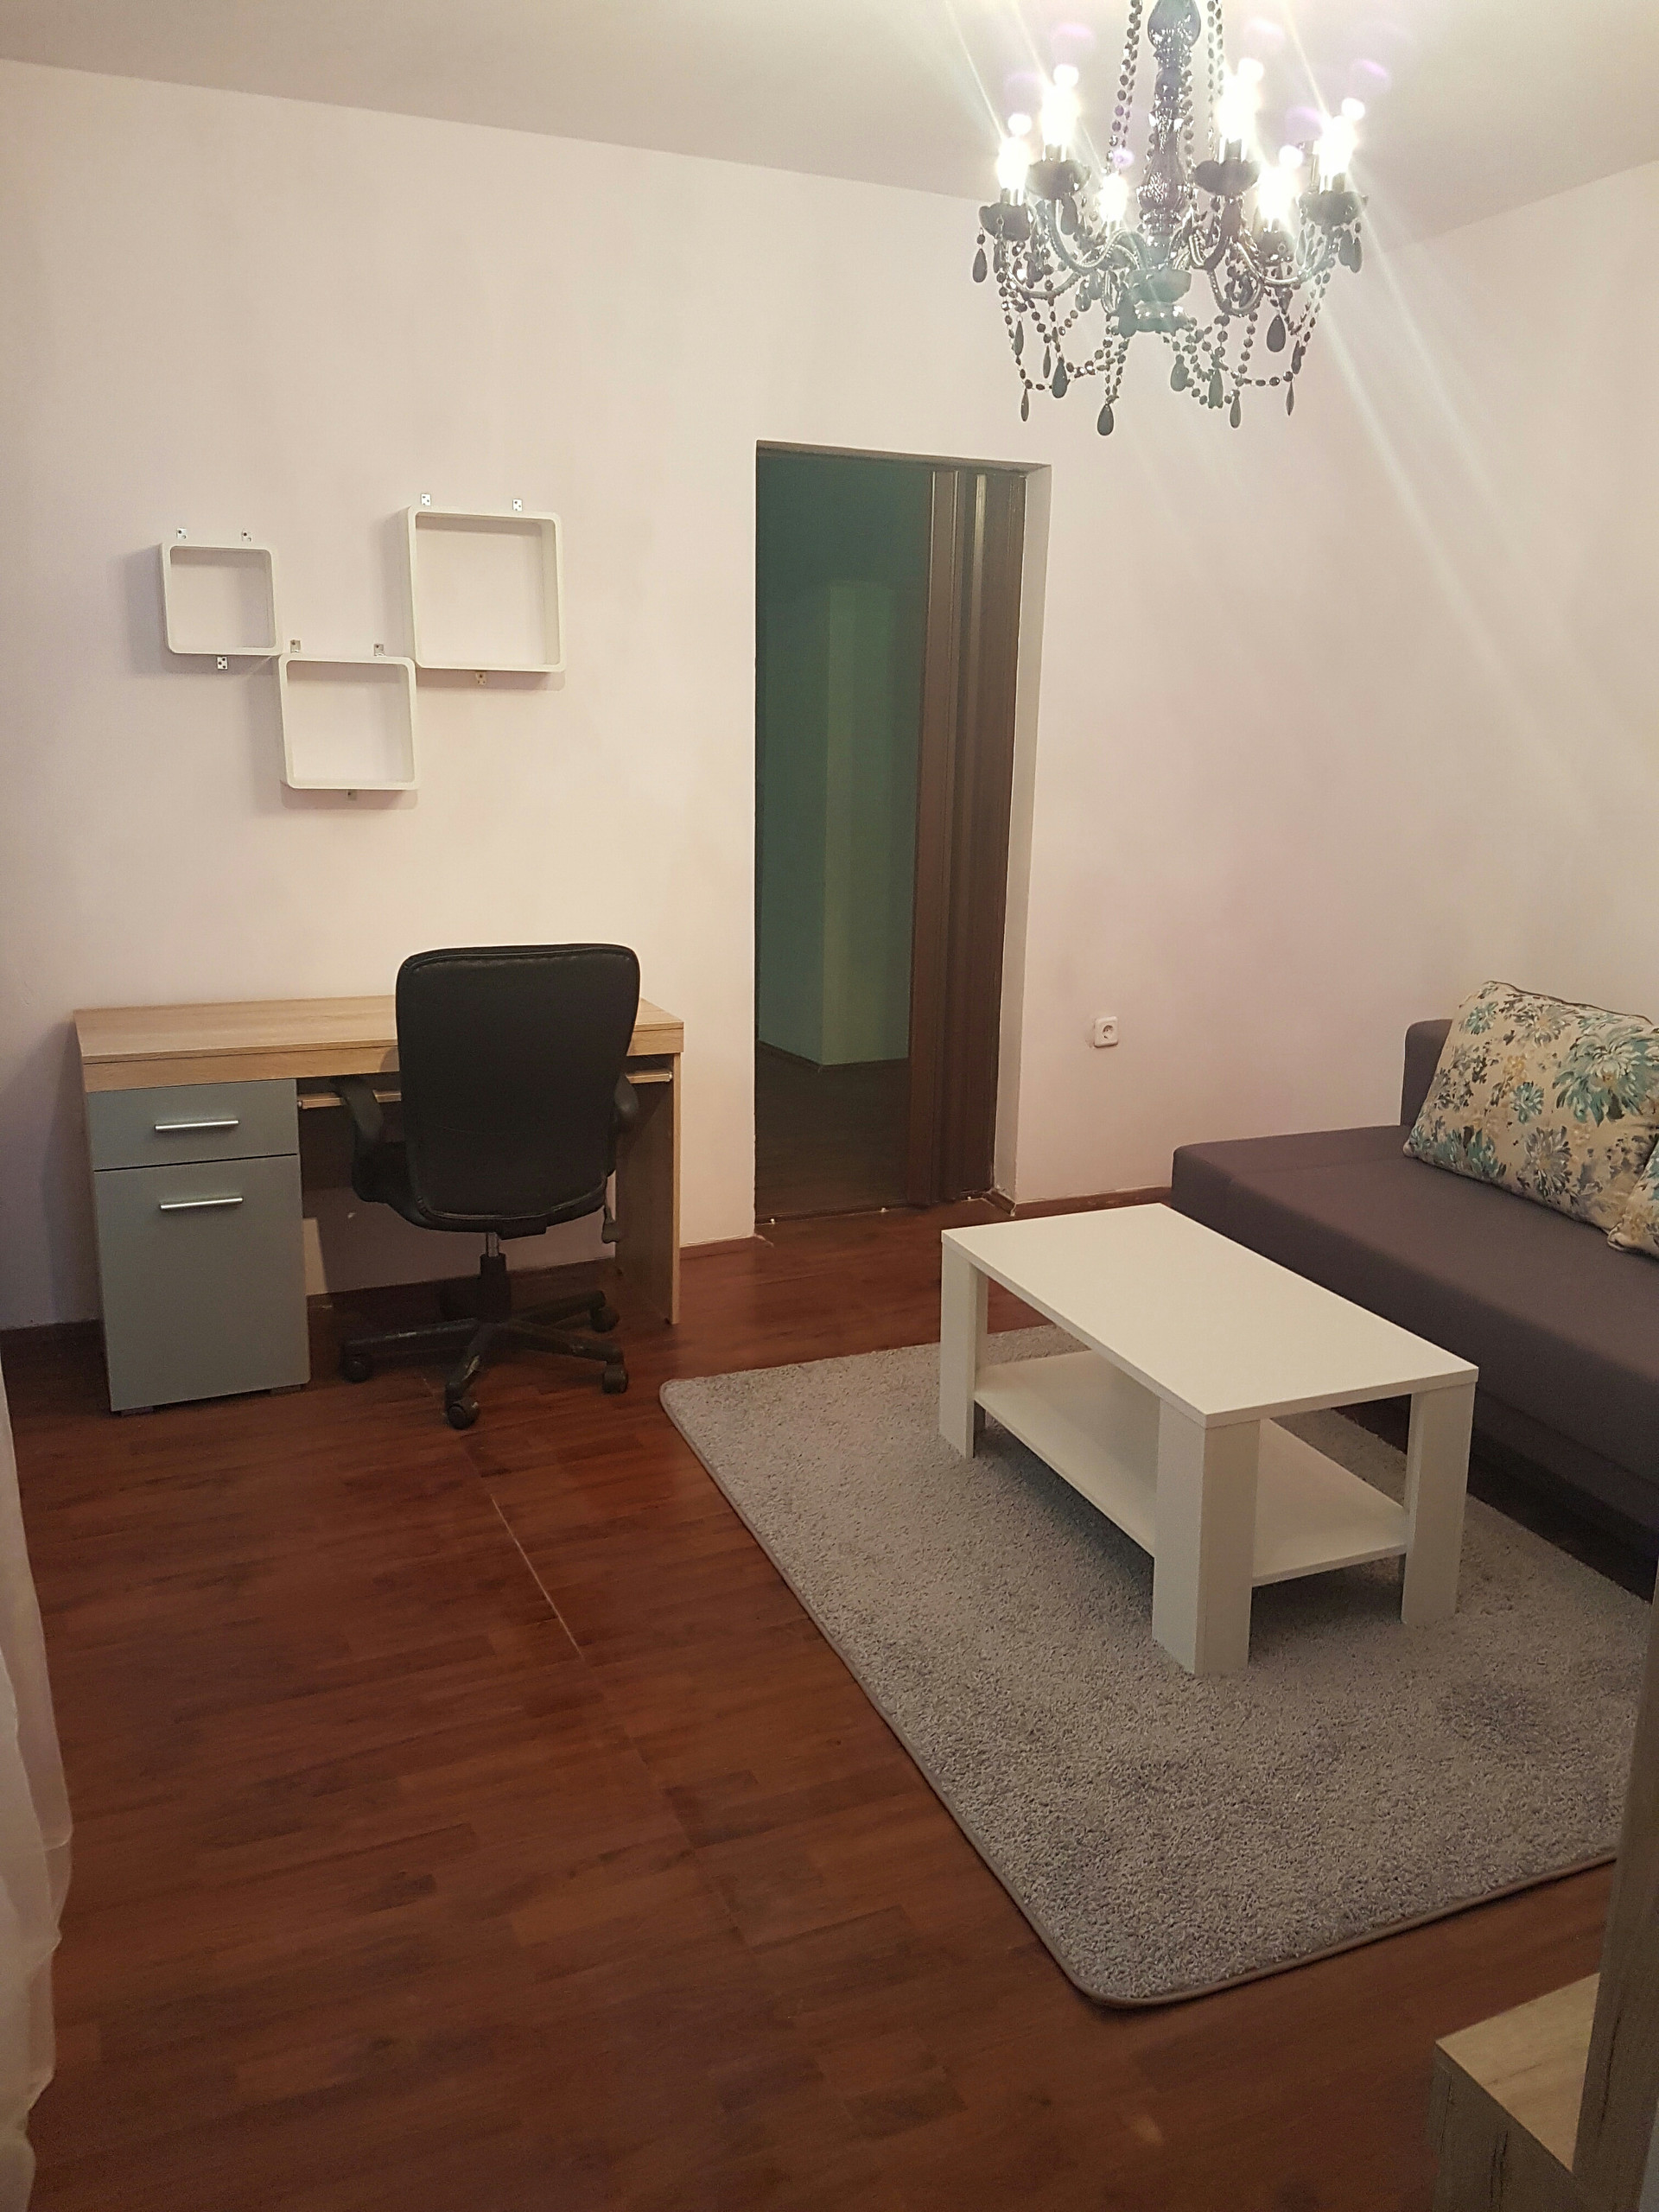 apartment for rent in the center of the city cluj | flat rent cluj